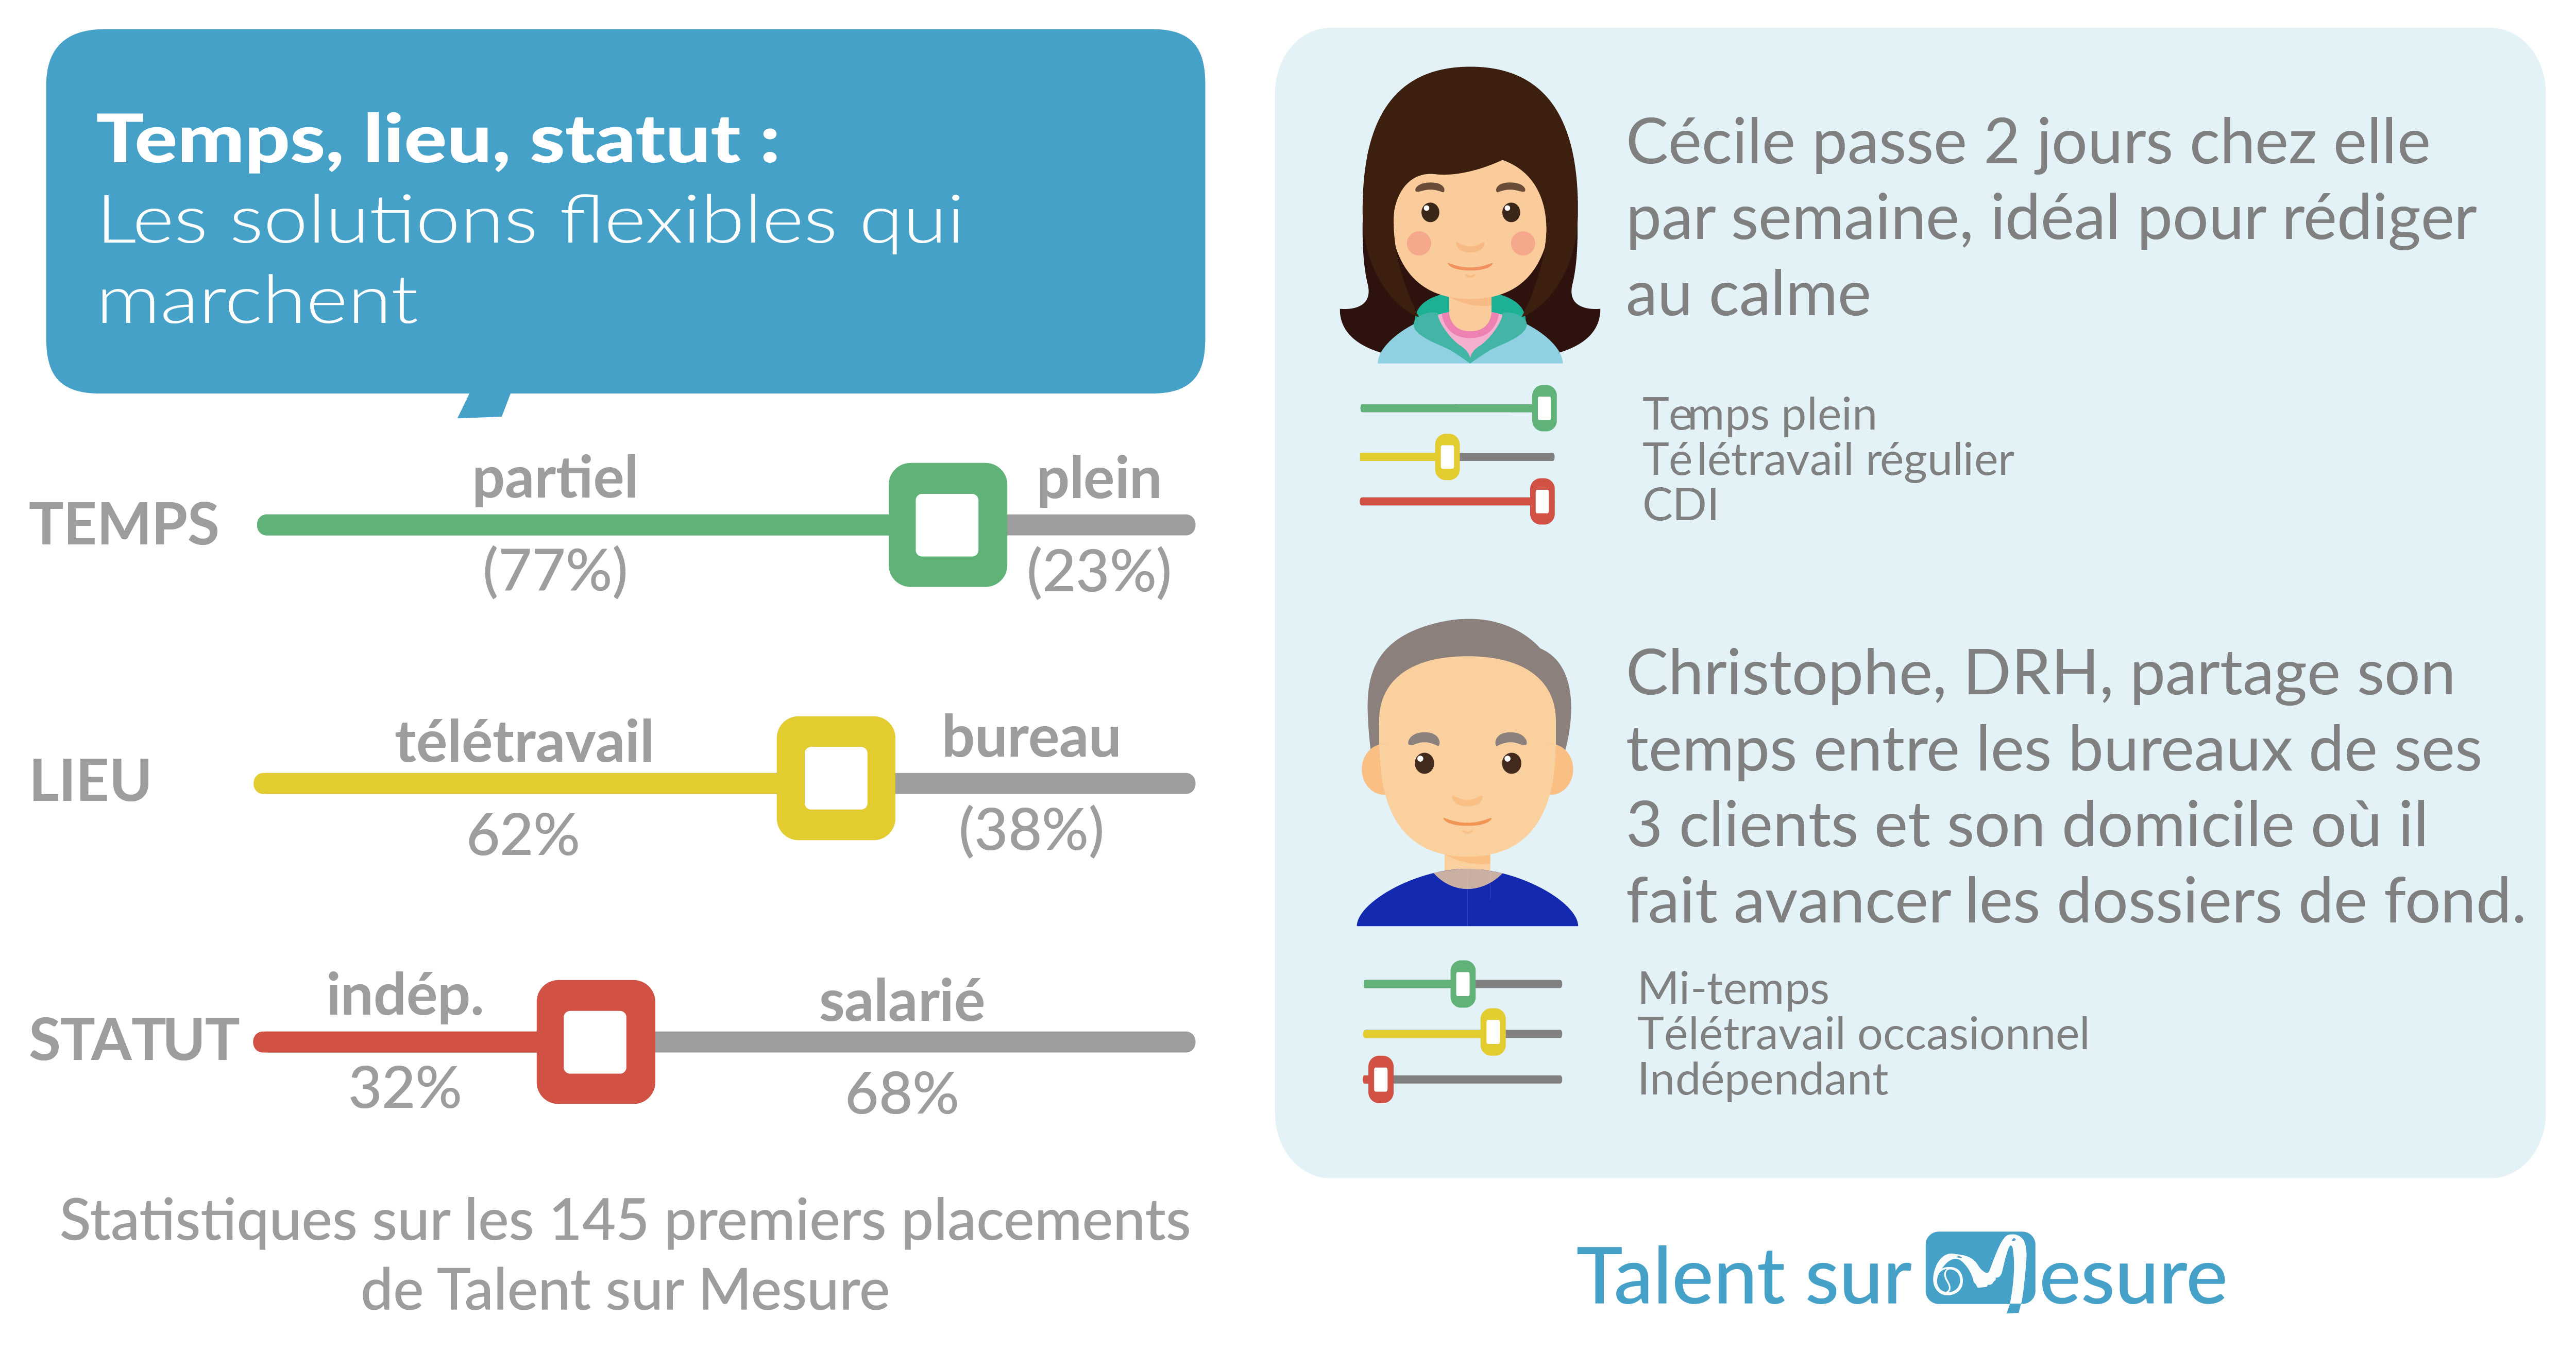 IMAGES_FB_TALENT_SUR_MESURE3_curseurs